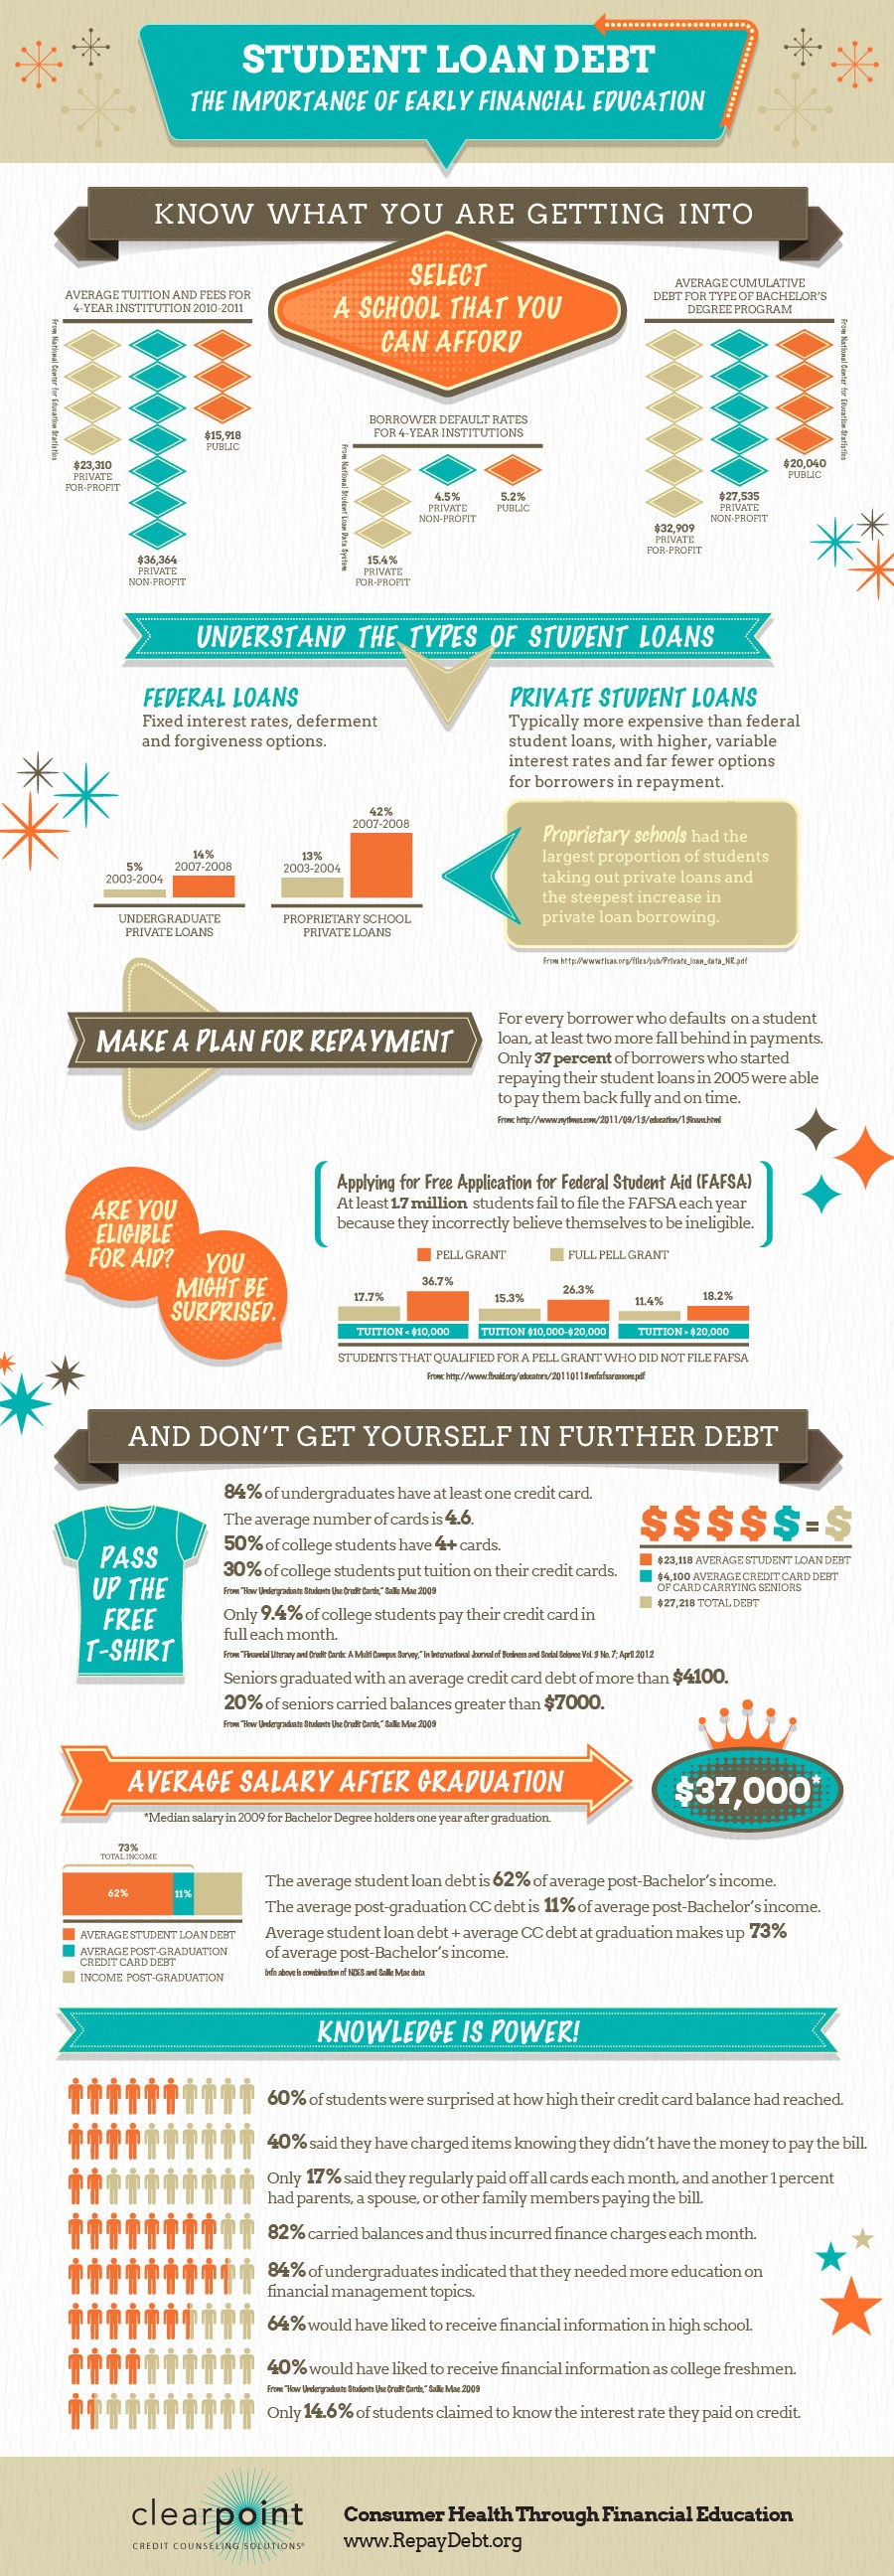 student-loan-debt-the-importance-of-early-financial-education_504f40e087e2c